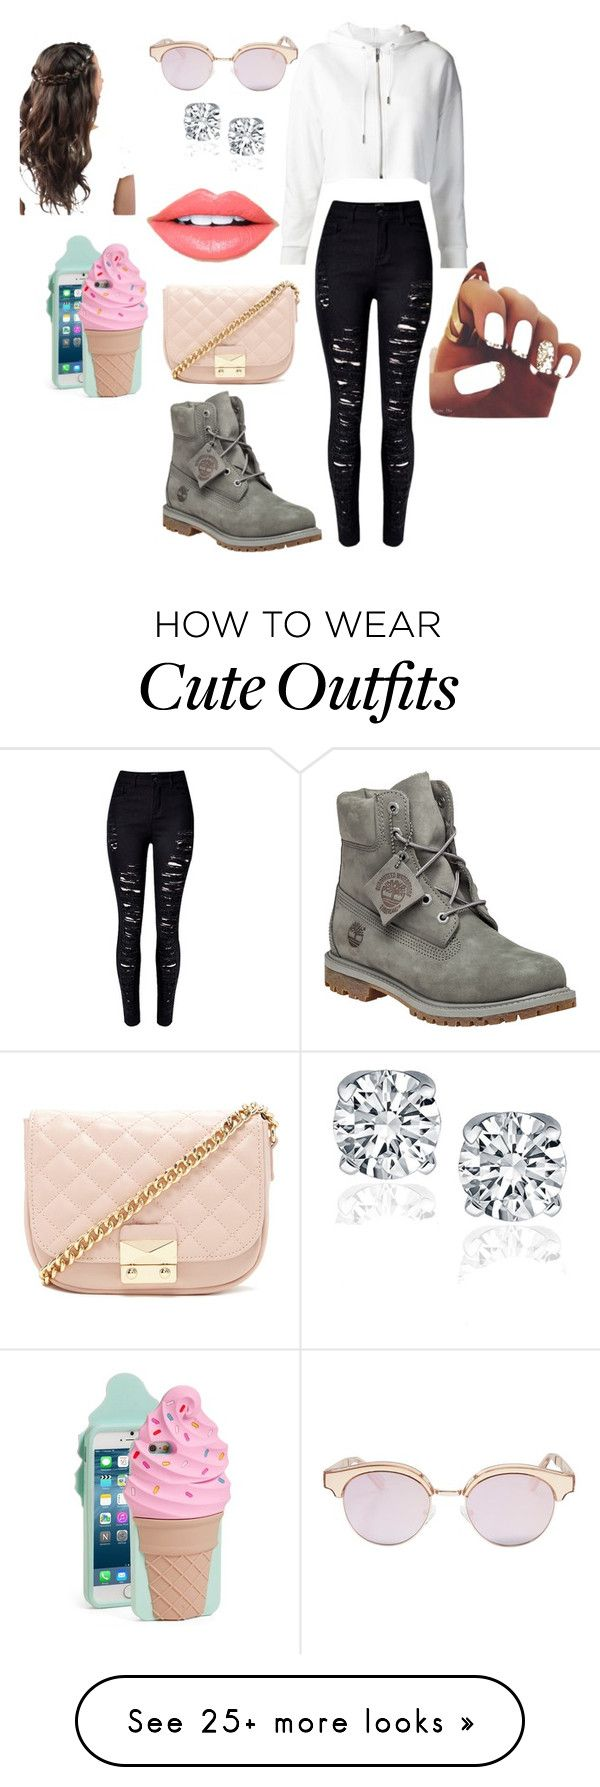 """Cute Teen Outfits"" by frouse on Polyvore featuring Forever 21, Le Specs, Kate Spade, Fiebiger and Timberland"